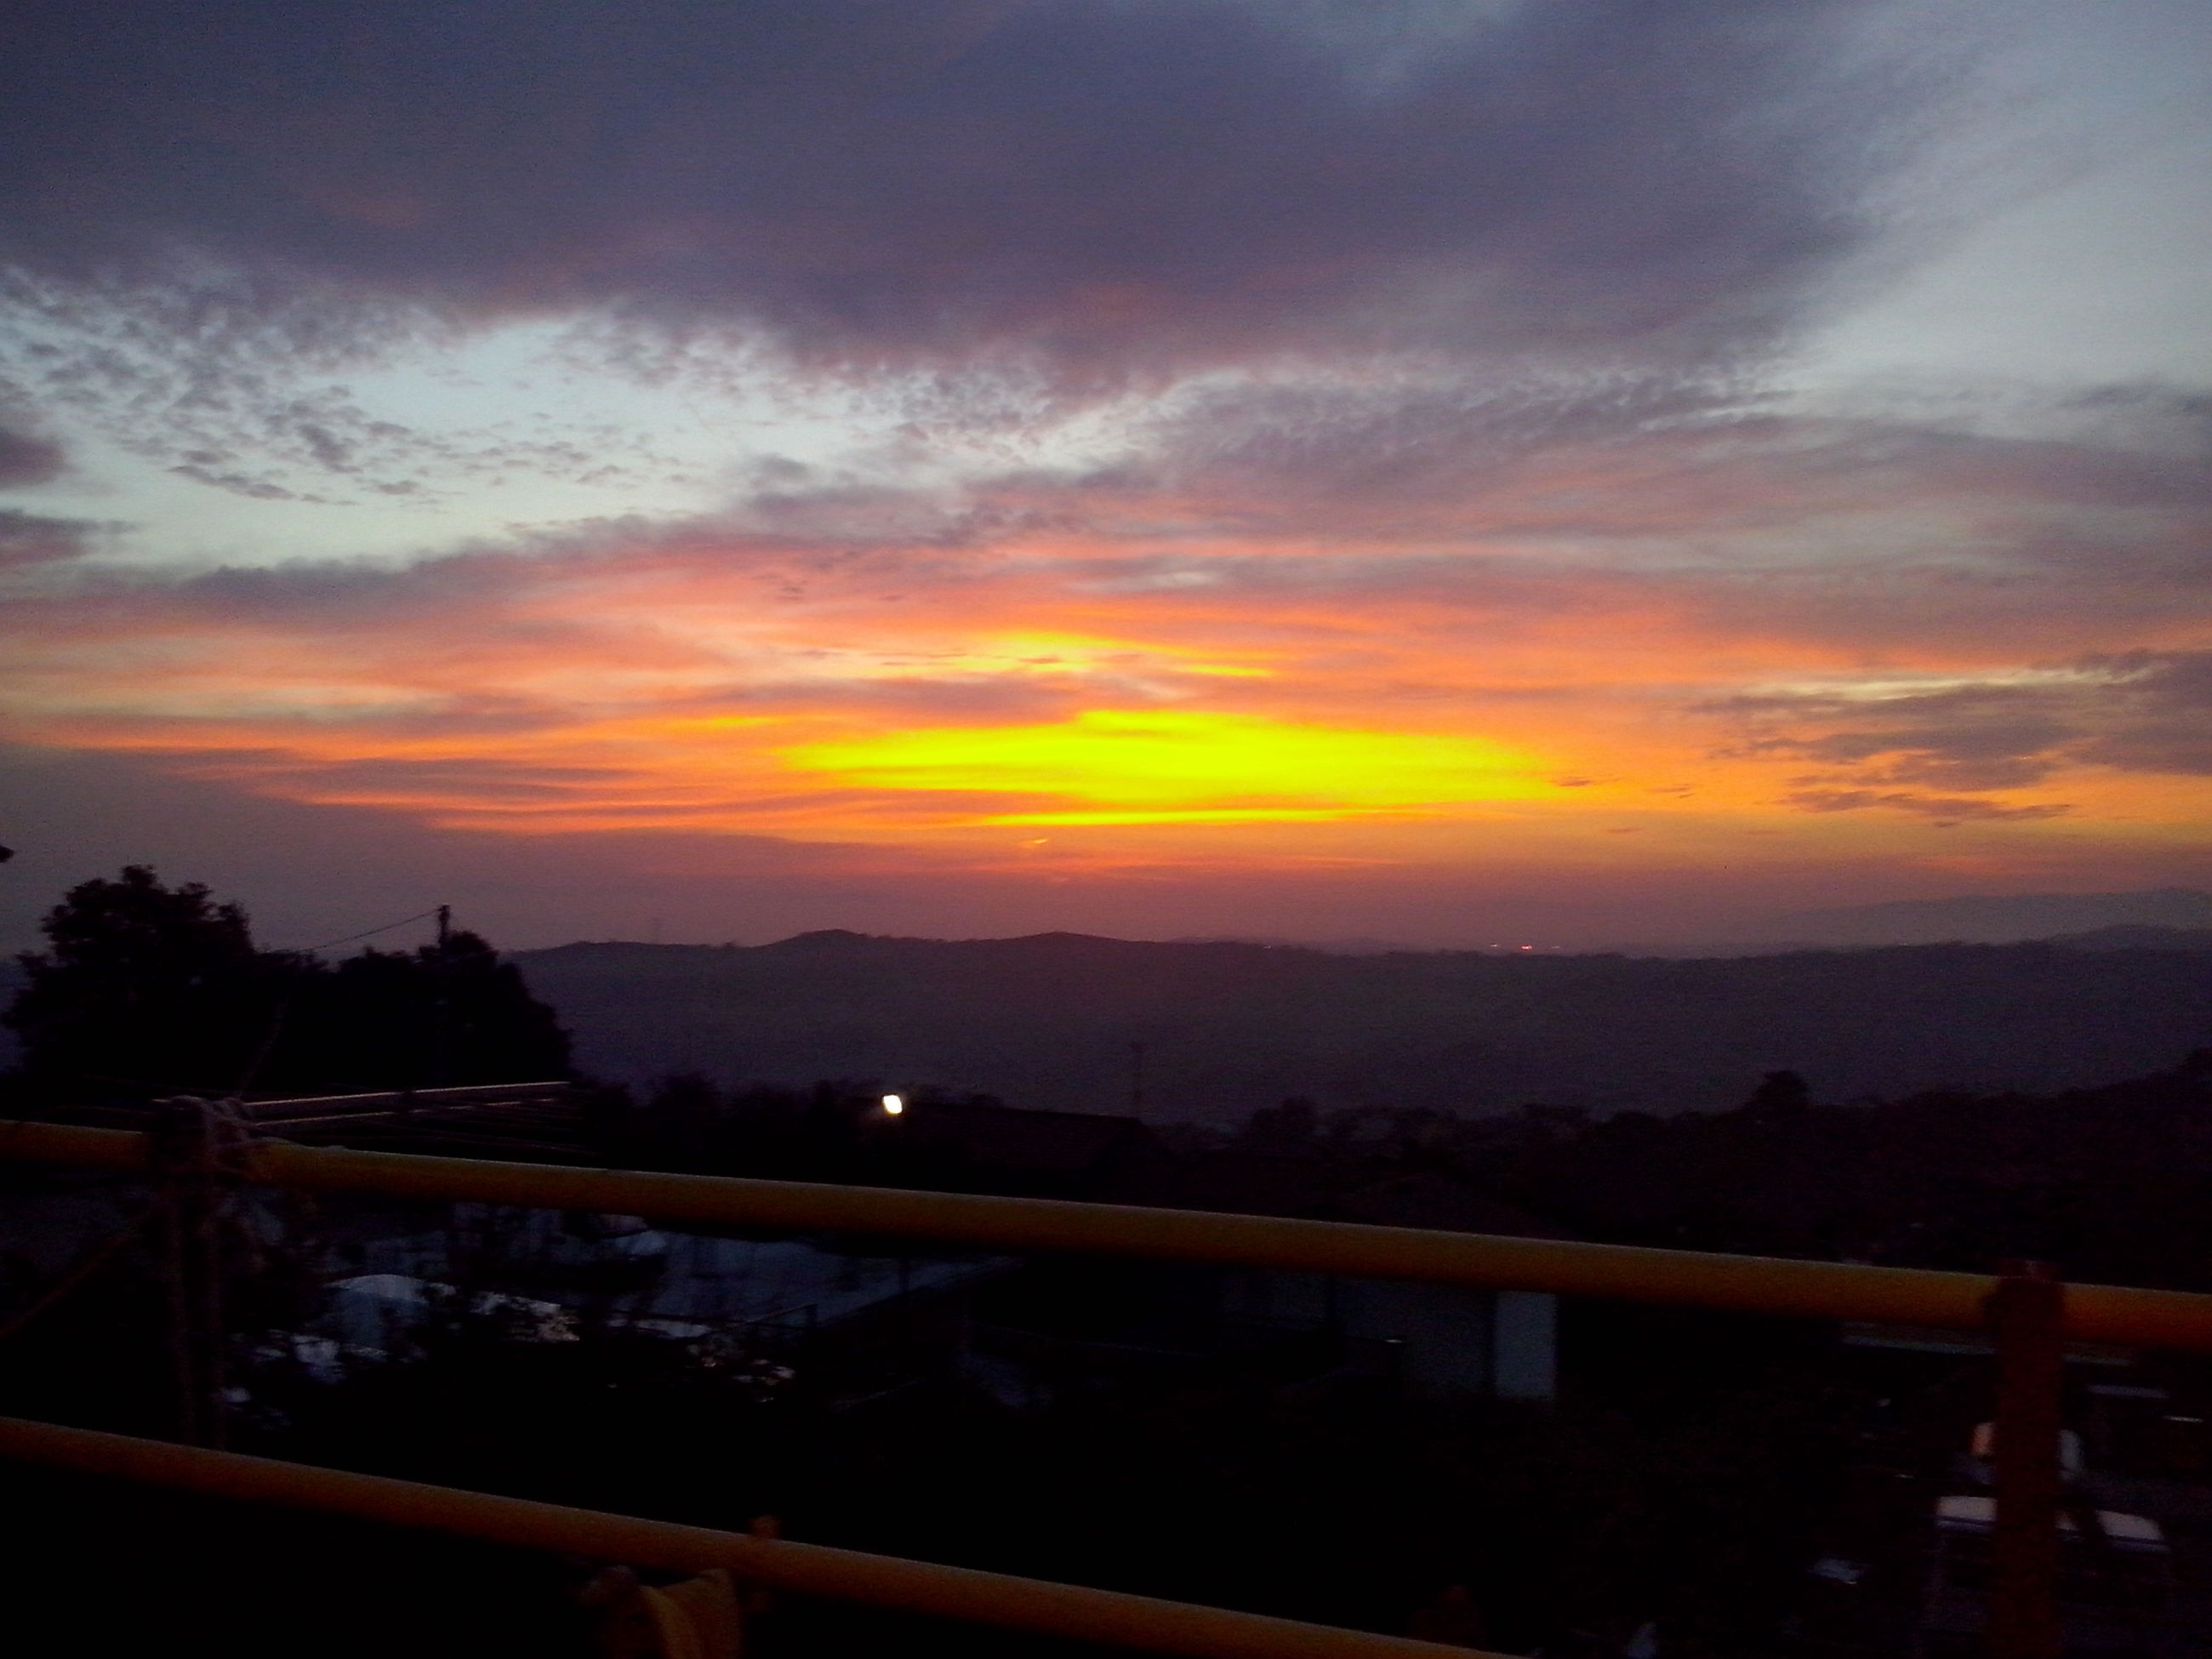 sunset, sky, scenics, cloud - sky, beauty in nature, orange color, tranquil scene, tranquility, silhouette, nature, mountain, idyllic, railing, landscape, dramatic sky, cloud, cloudy, dusk, water, built structure